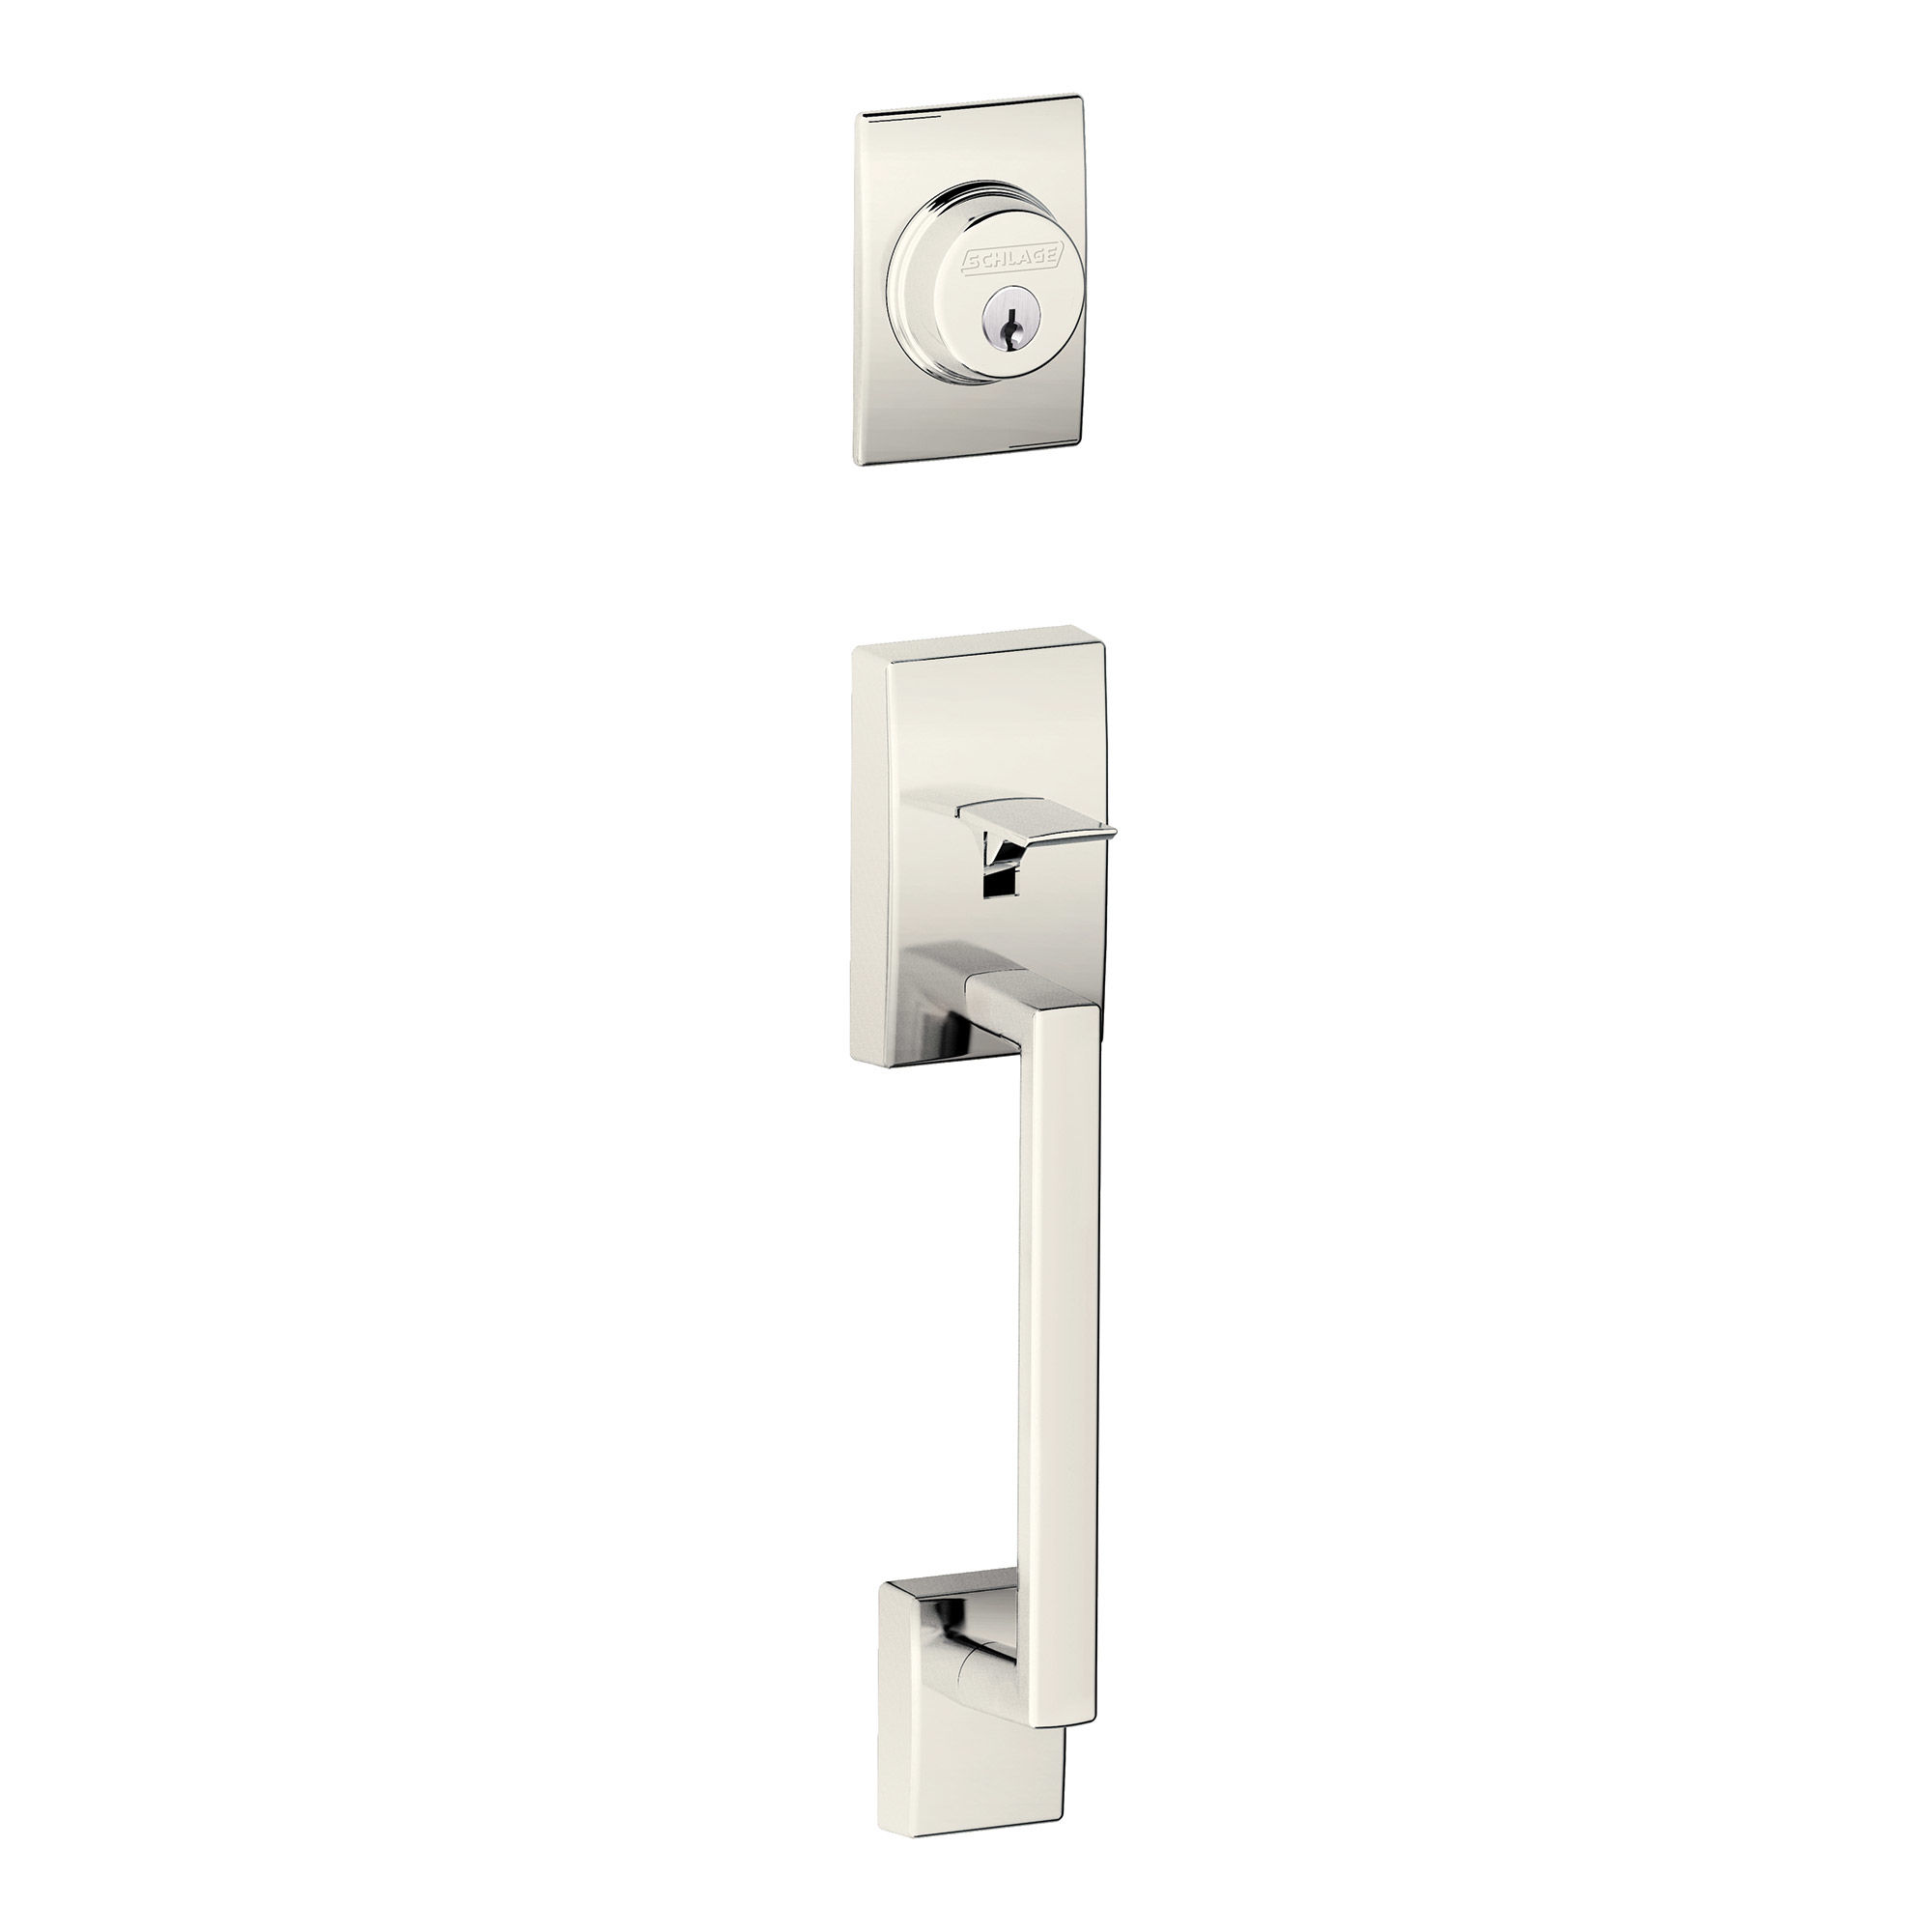 brushed knob privacy and door plate nickel passage schlage new interior hardware york knobs dummy set